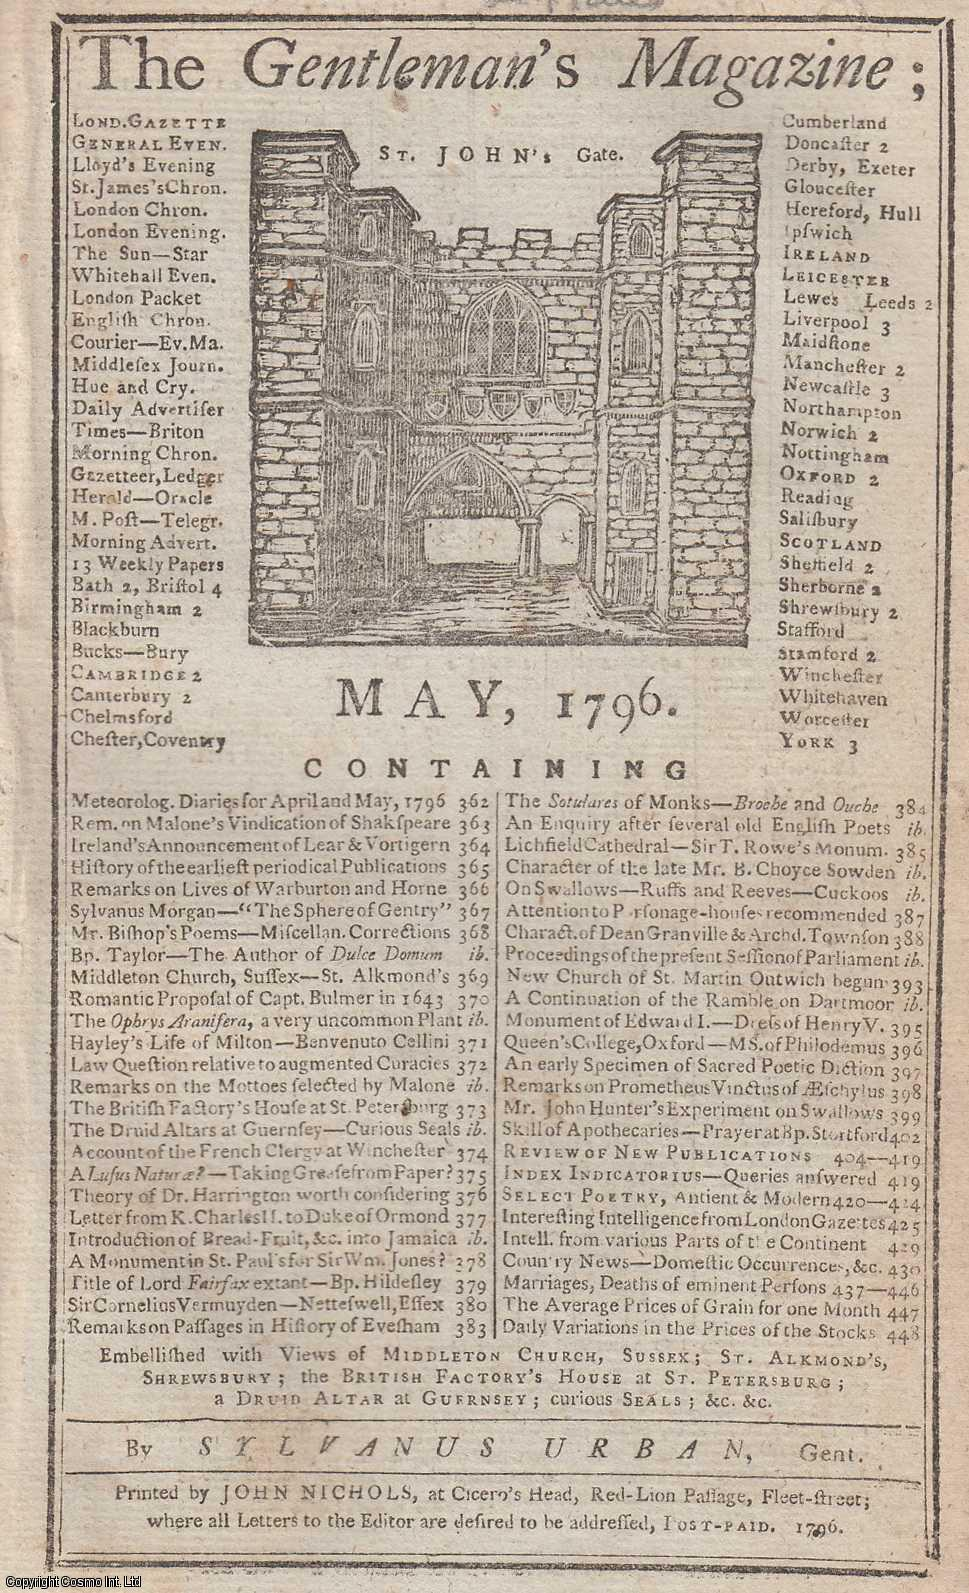 The Gentleman's Magazine for May 1796.  FEATURING Two Plates; St. Alkmund's Church, Shrewsbury and Middleton Church, Sussex & Druid Altar in Guernsey and British Factory House at St. Petersburg, etc., Urban, Sylvanus.